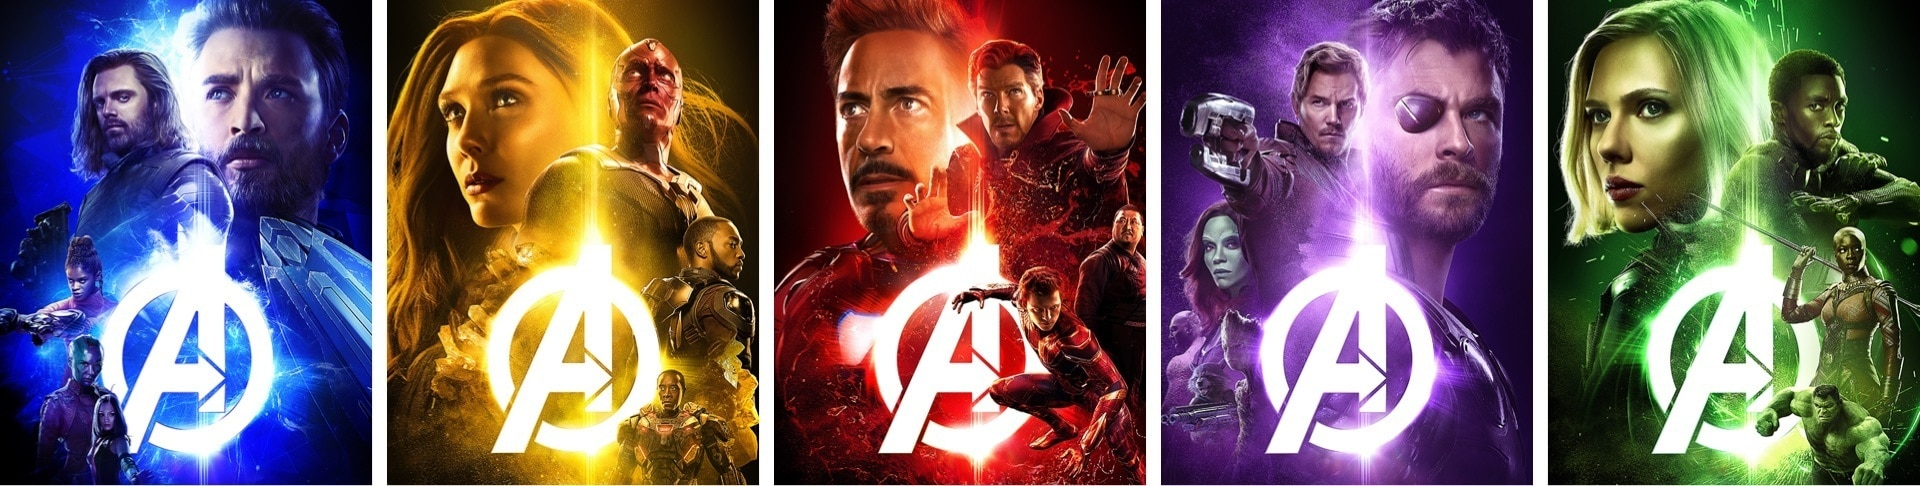 Team-Up Posters for 'Avengers: Infinity War'